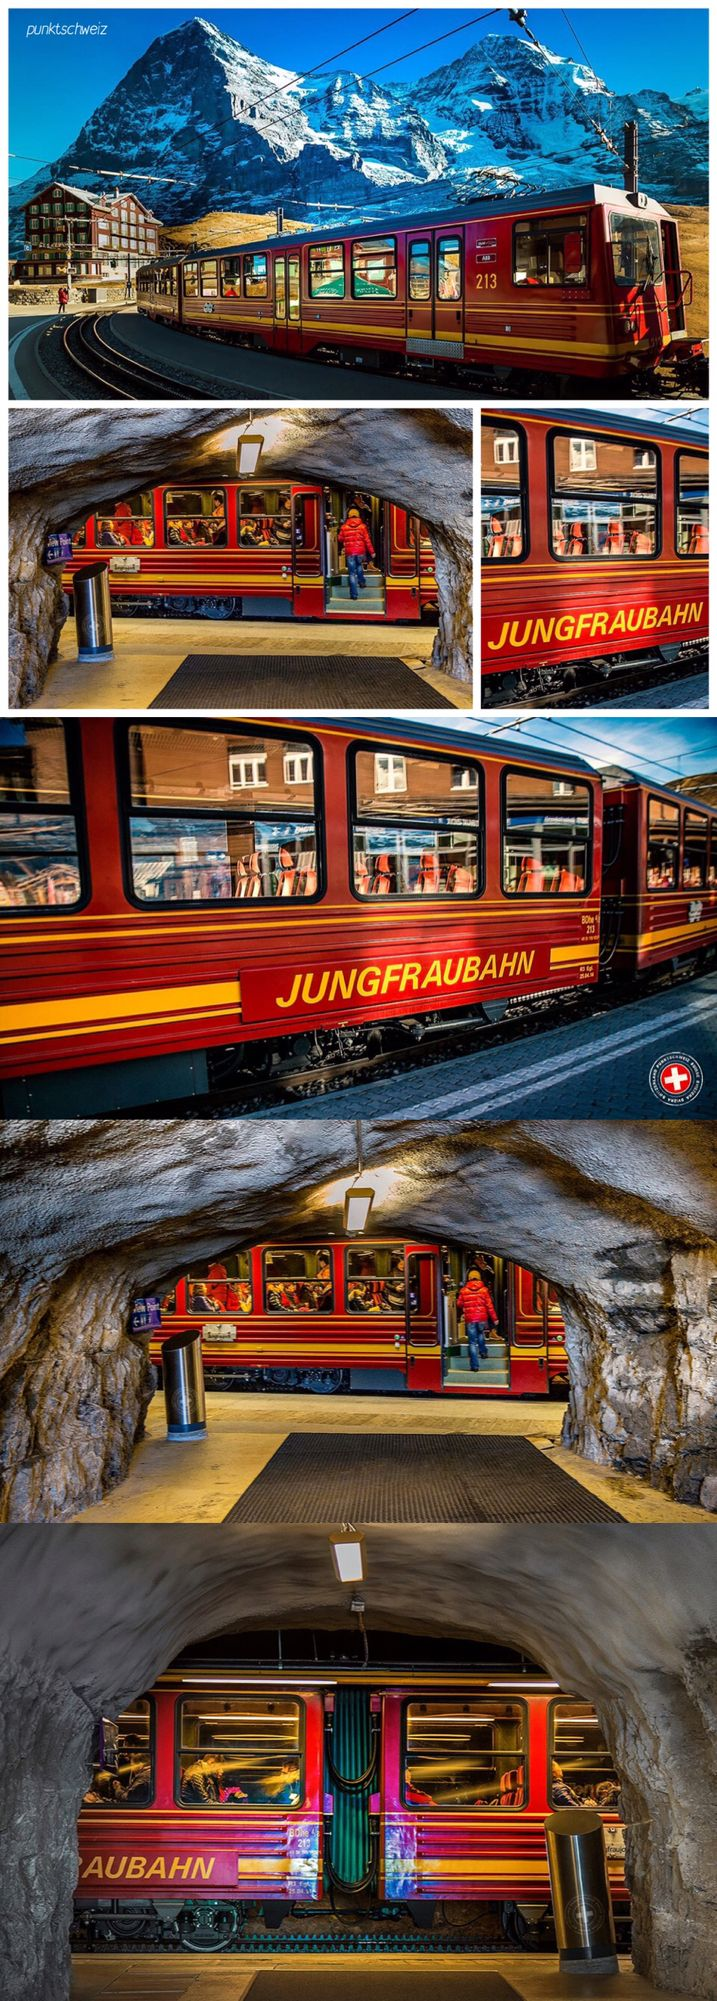 Die Jungfraubahn - Kleine Scheidegg © https://youtu.be/0JTb5xW4S-s - #Jungfraujoch #TopofEurope #Switzerland #Swisspictures - https://www.youtube.com/channel/UCU8oI15ET4xMuM1kGyots8A